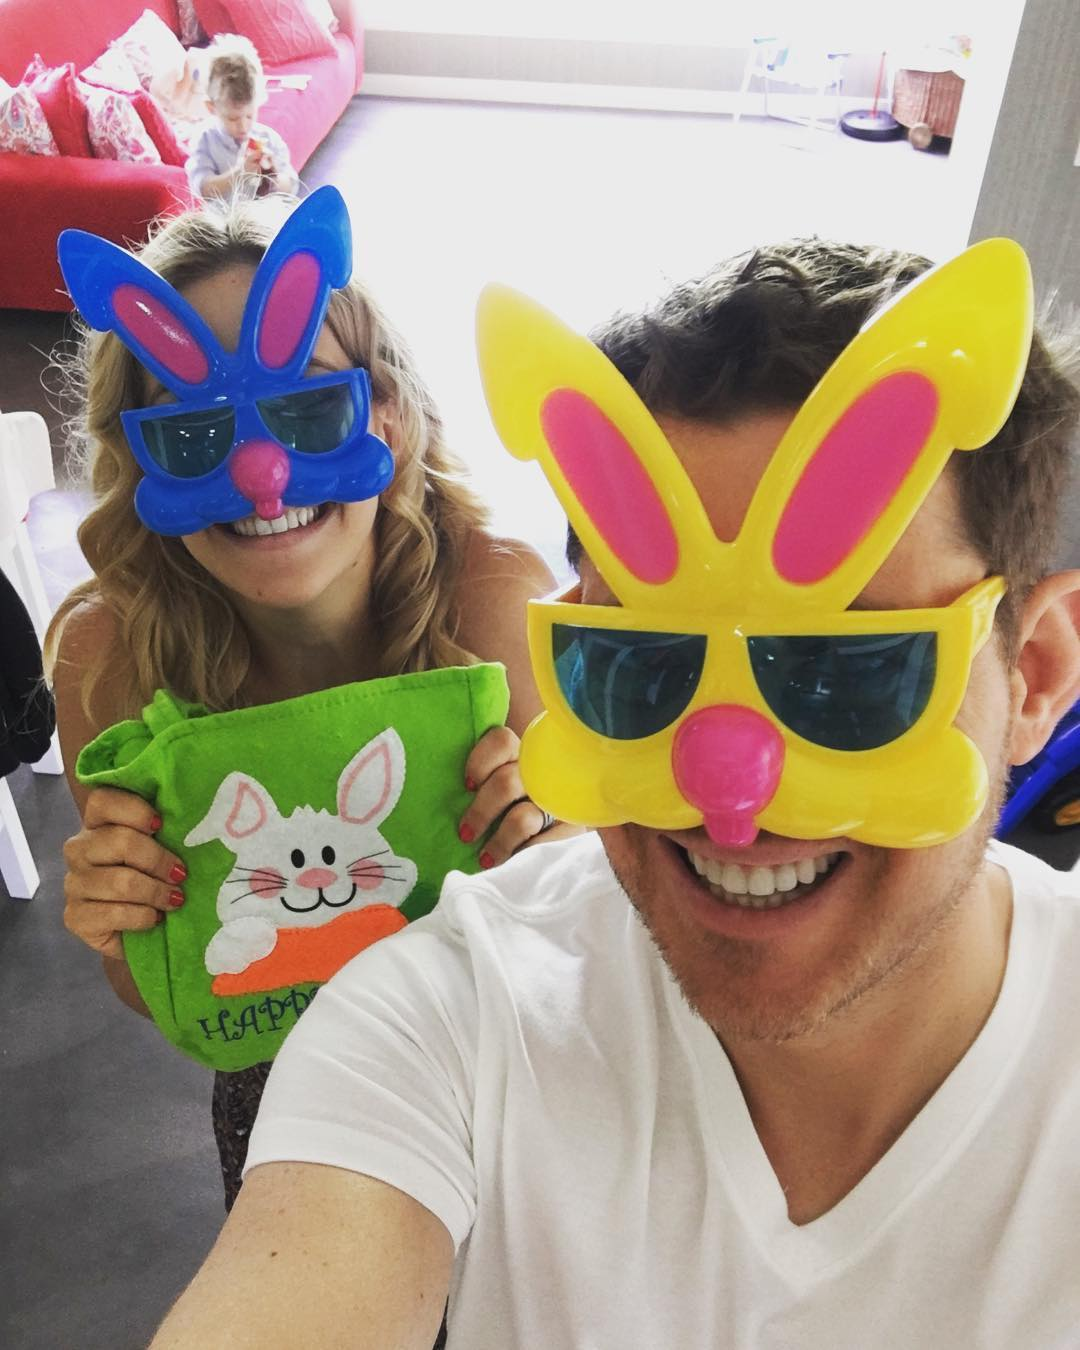 Michael Bublé Instagram: Happy Easter from our family to yours !!   ...